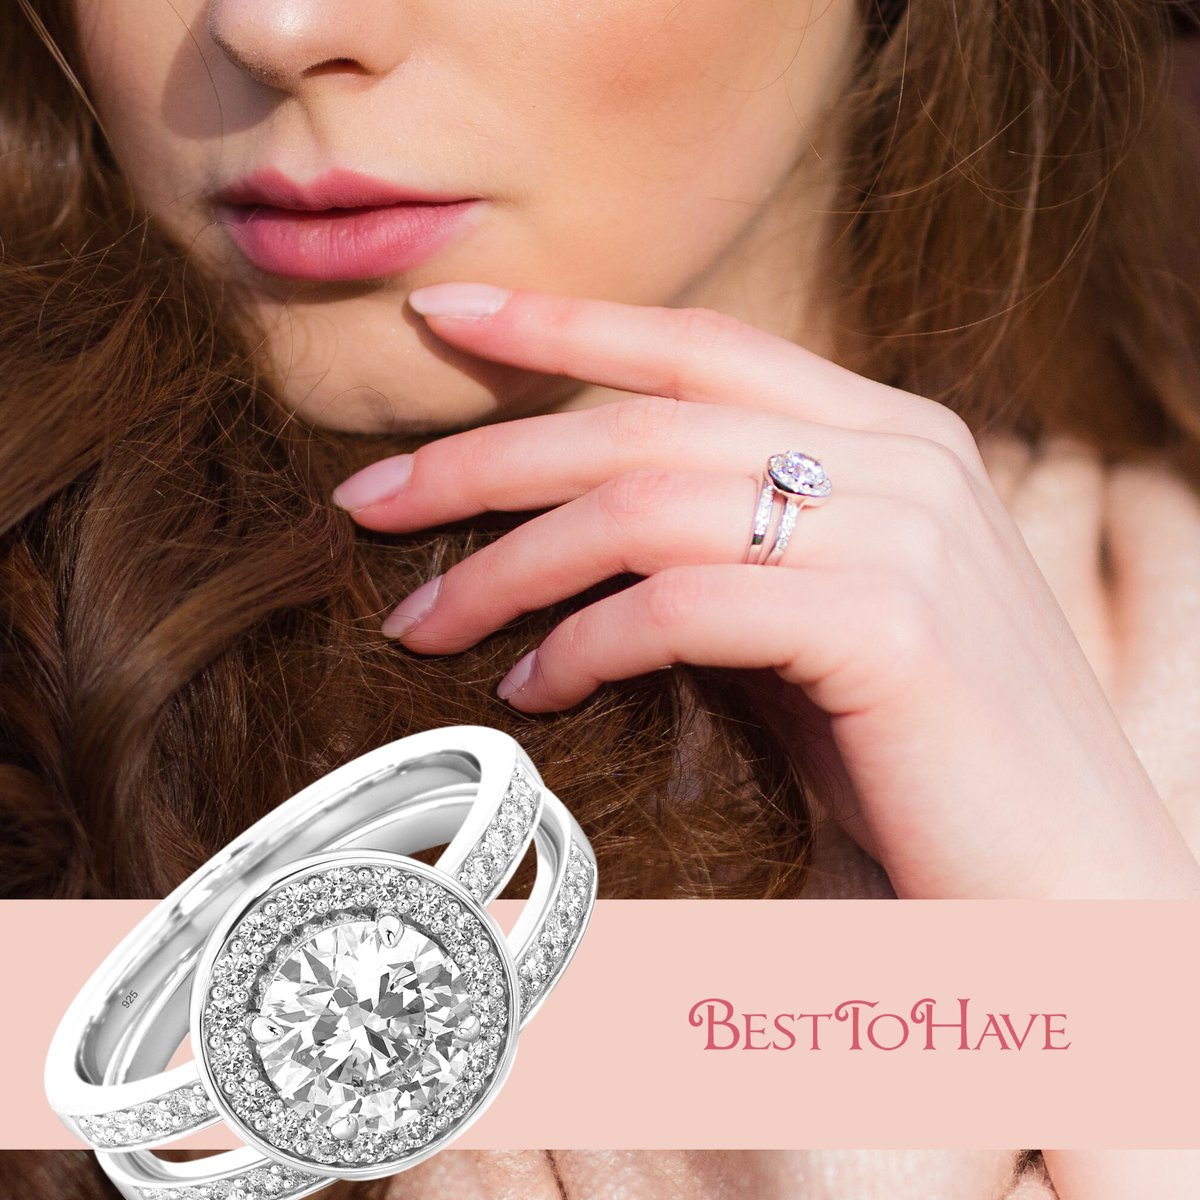 For those who adore the lustrous sparkle of affordable gemstones Code: 315 £34.99 Shop more: https://www.besttohave.com/  #womenrings #weddingrings #lovejewelry #silverjewelry #sterlingsilver #cubiczirconia #besttohave #besttohavejewelry #silverring #zirconia #silver925 #engagementpic.twitter.com/TZ0d22PS9M